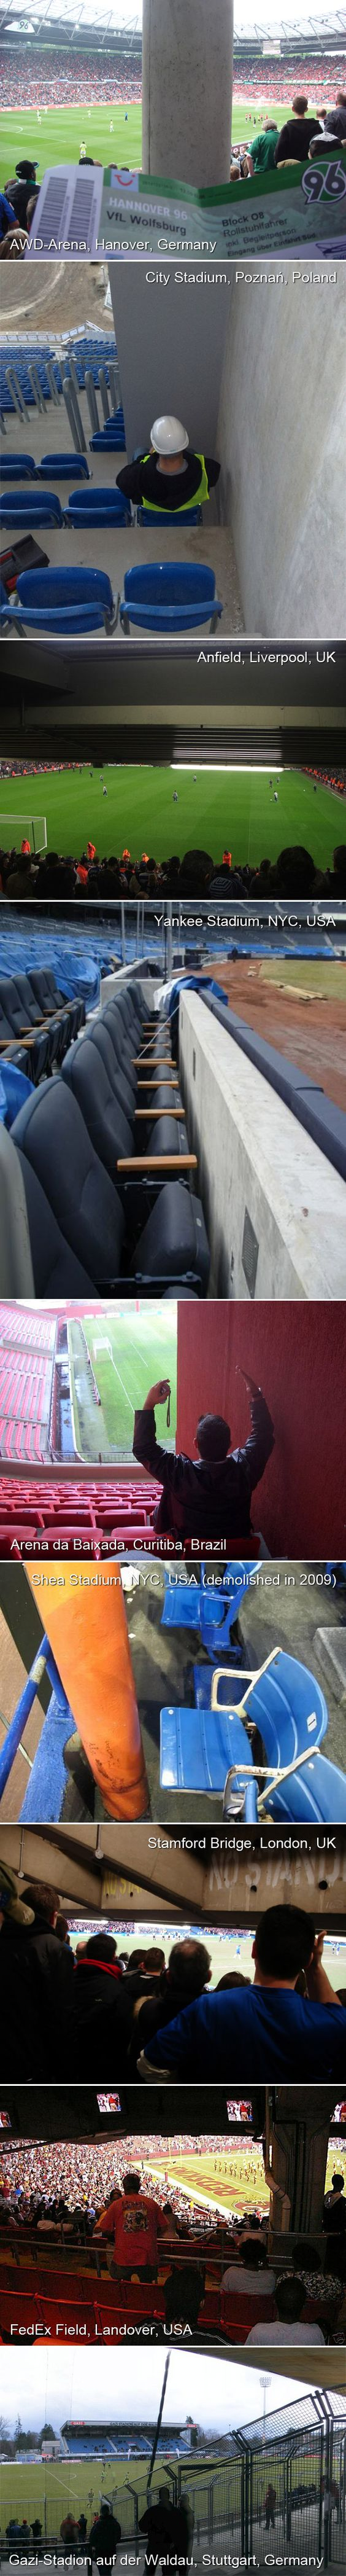 Terrible seats in stadiums around the world